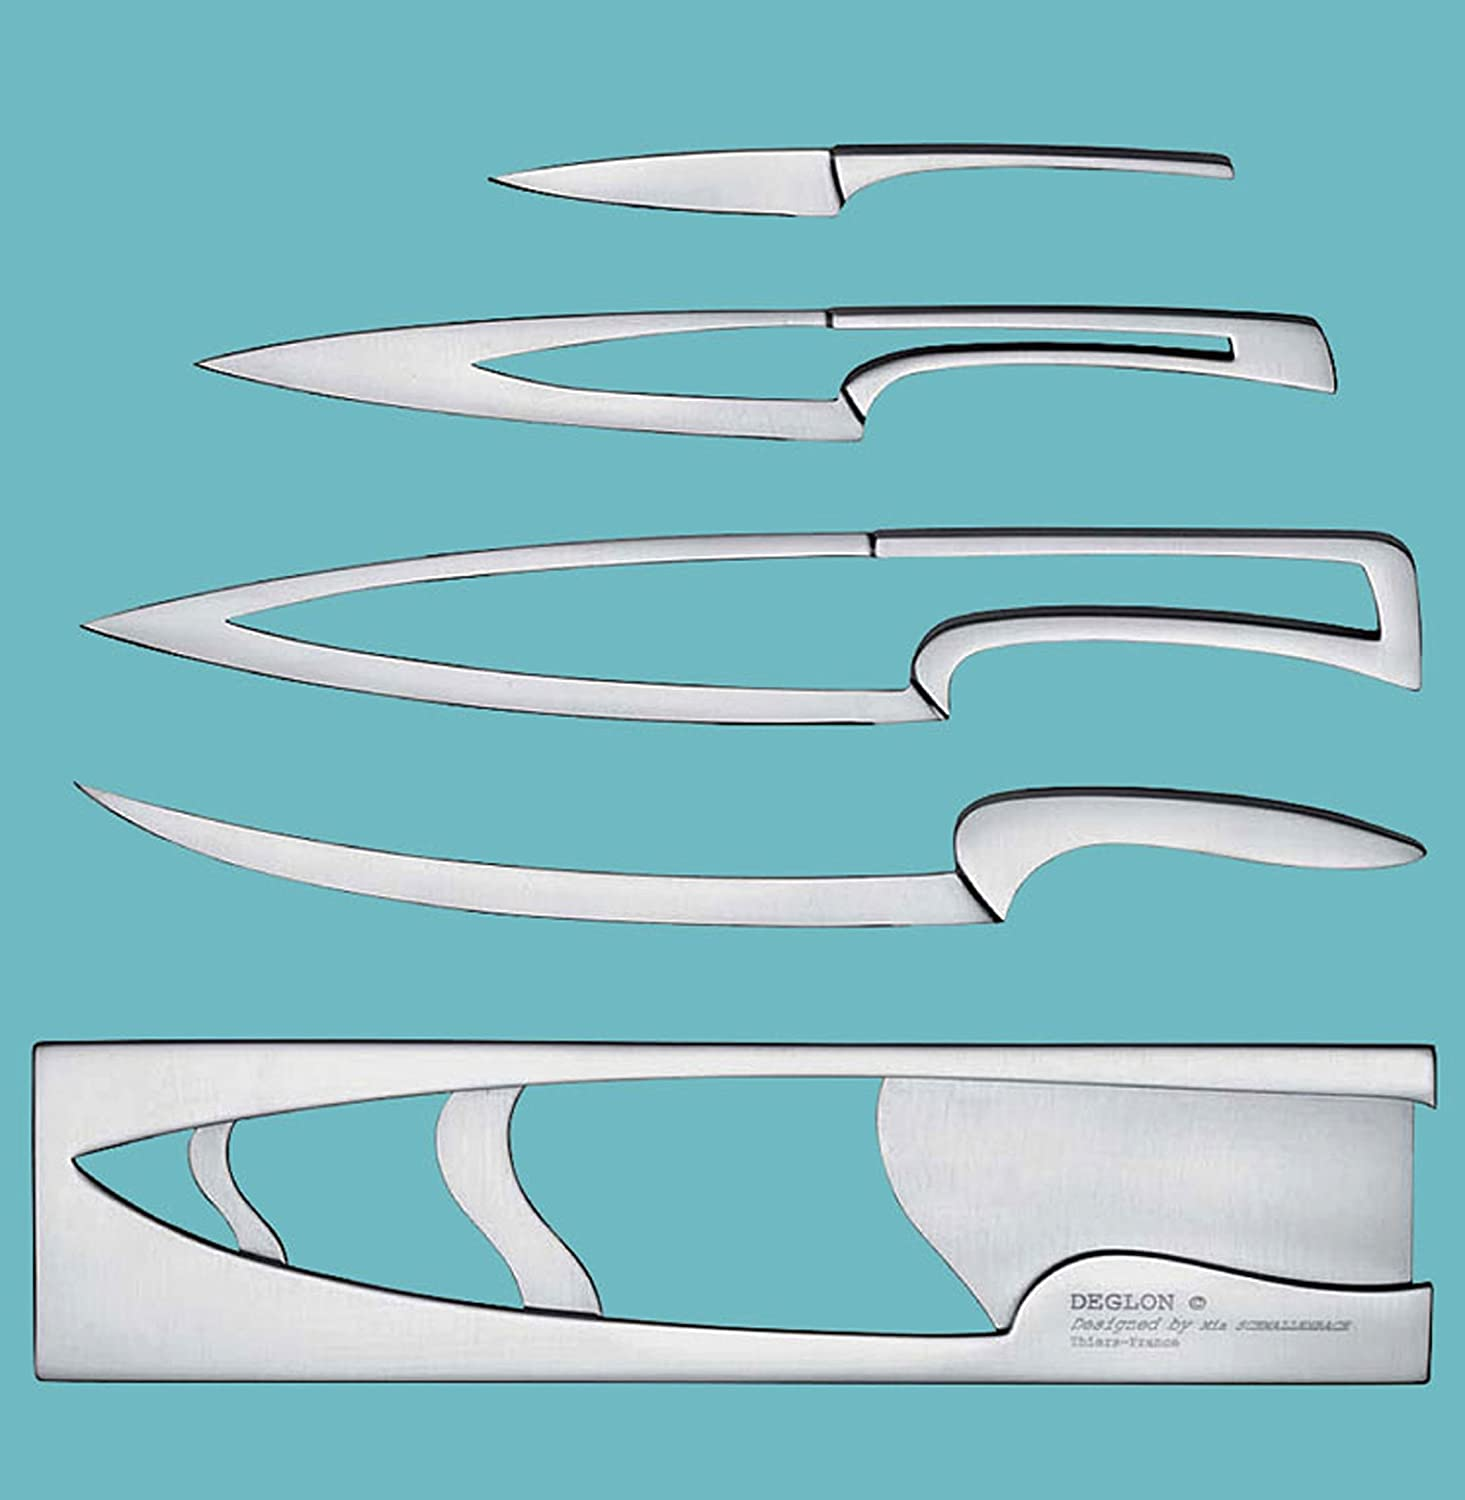 amazon com deglon meeting knife set stainless steel knives and